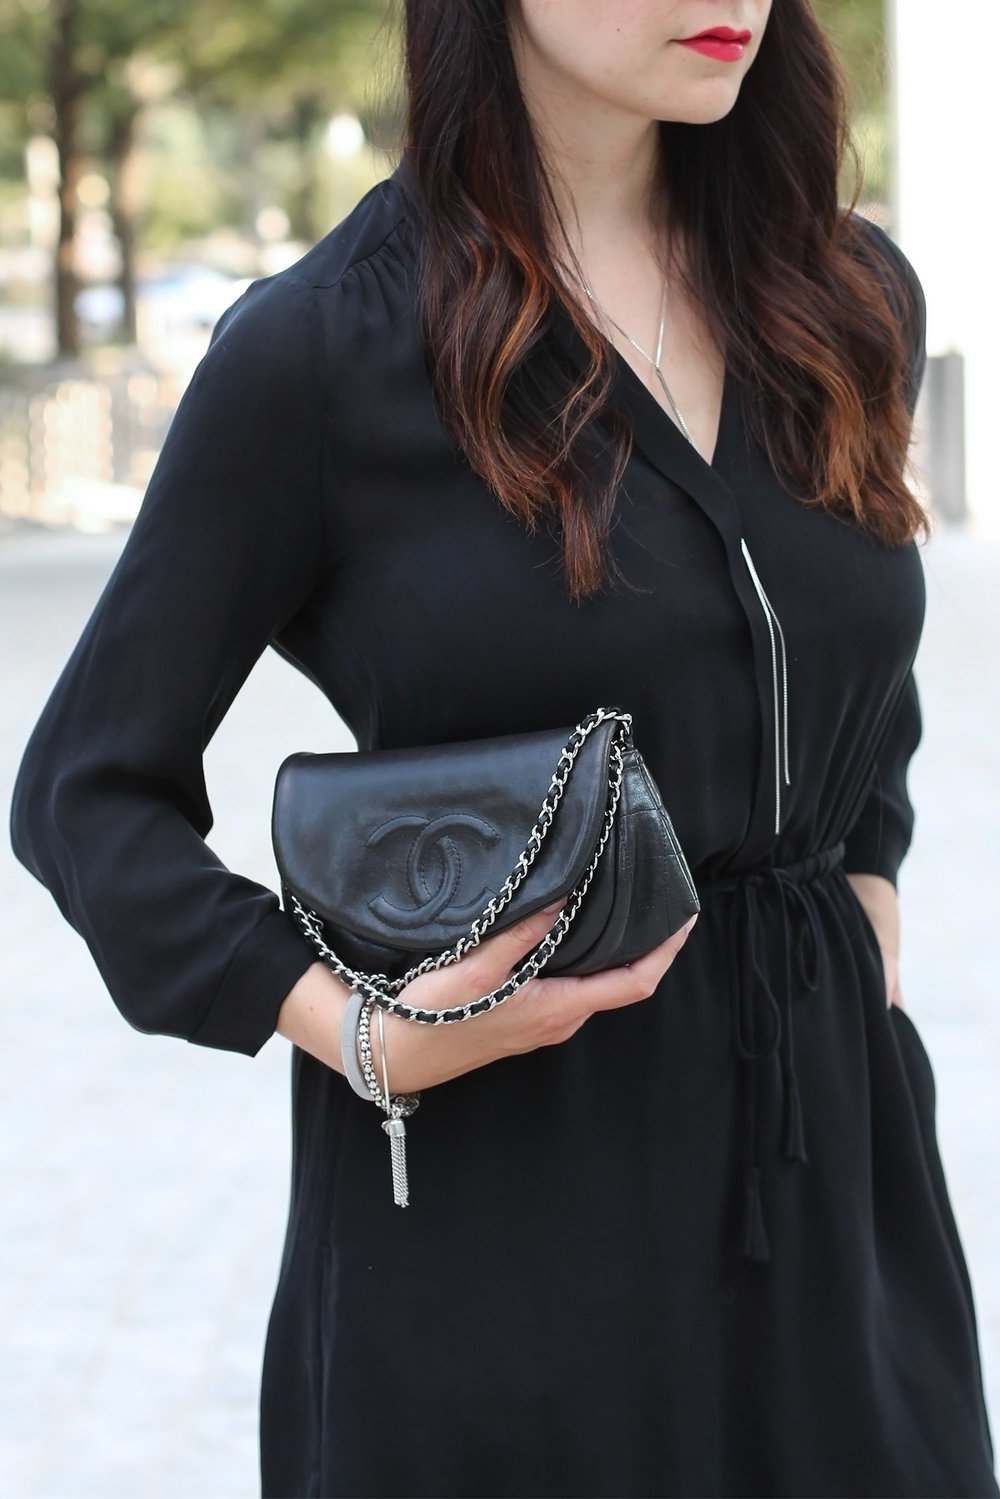 Chanel Half Moon Clutch, Little Black Dress